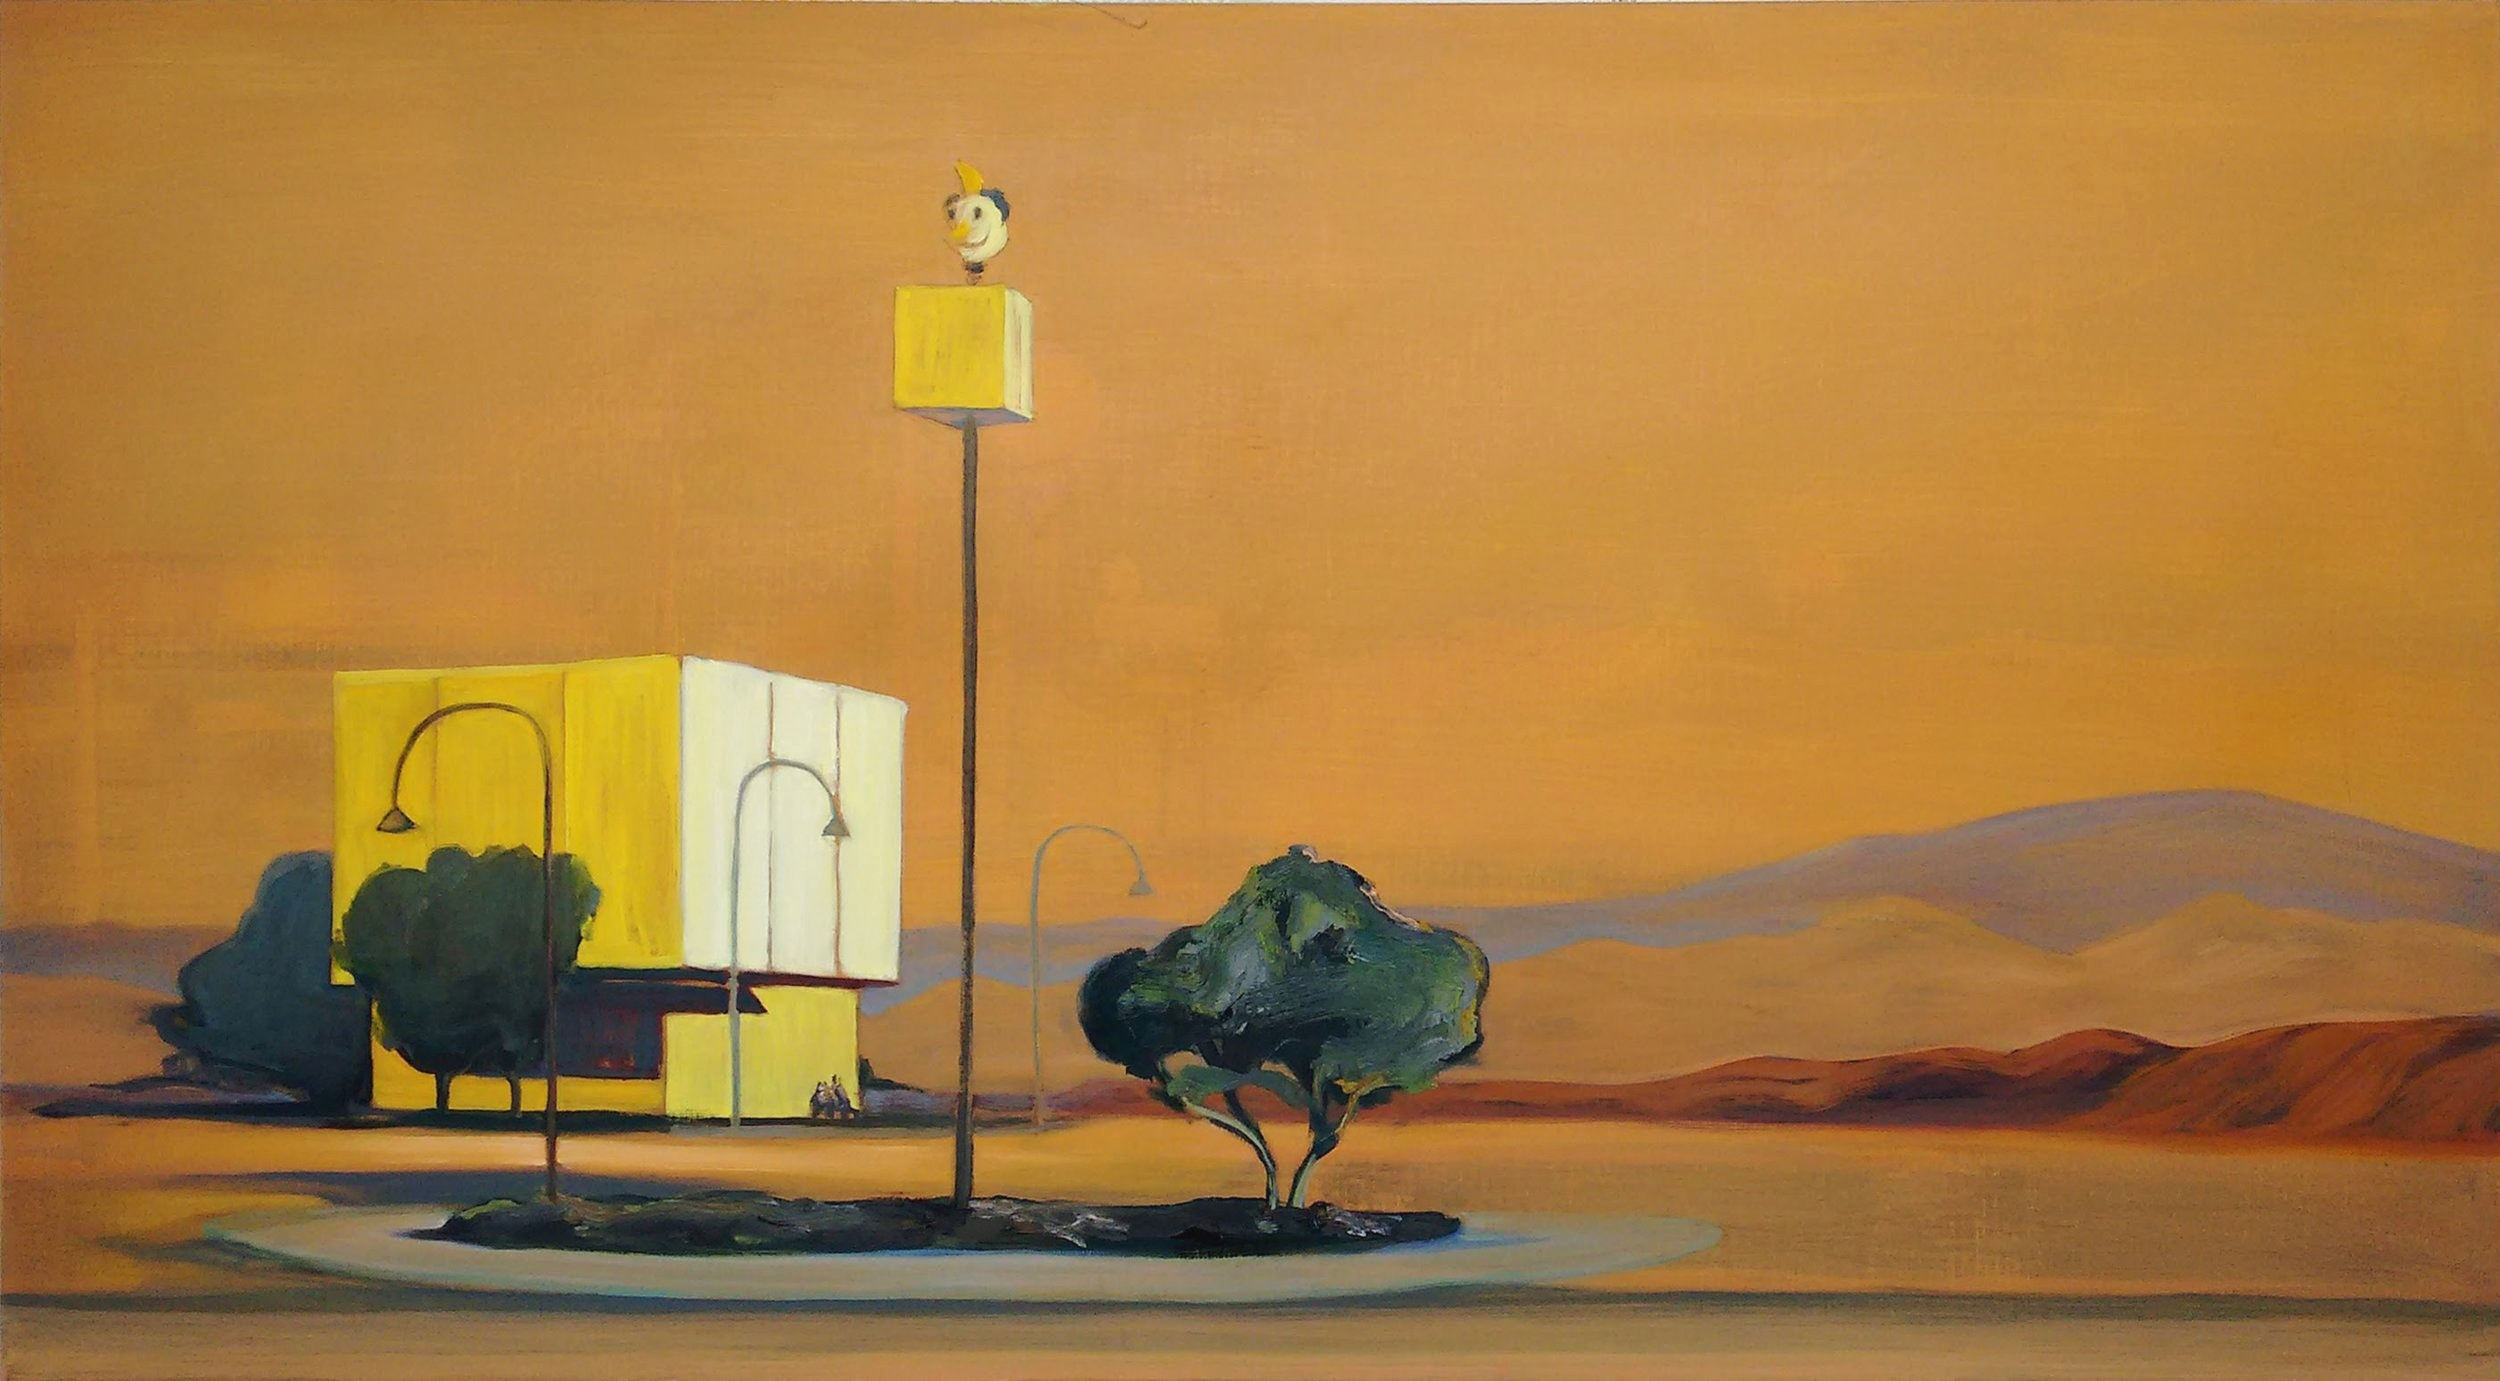 MONUMENT BOULEVARD  150 x 80 cm Oil on canvas